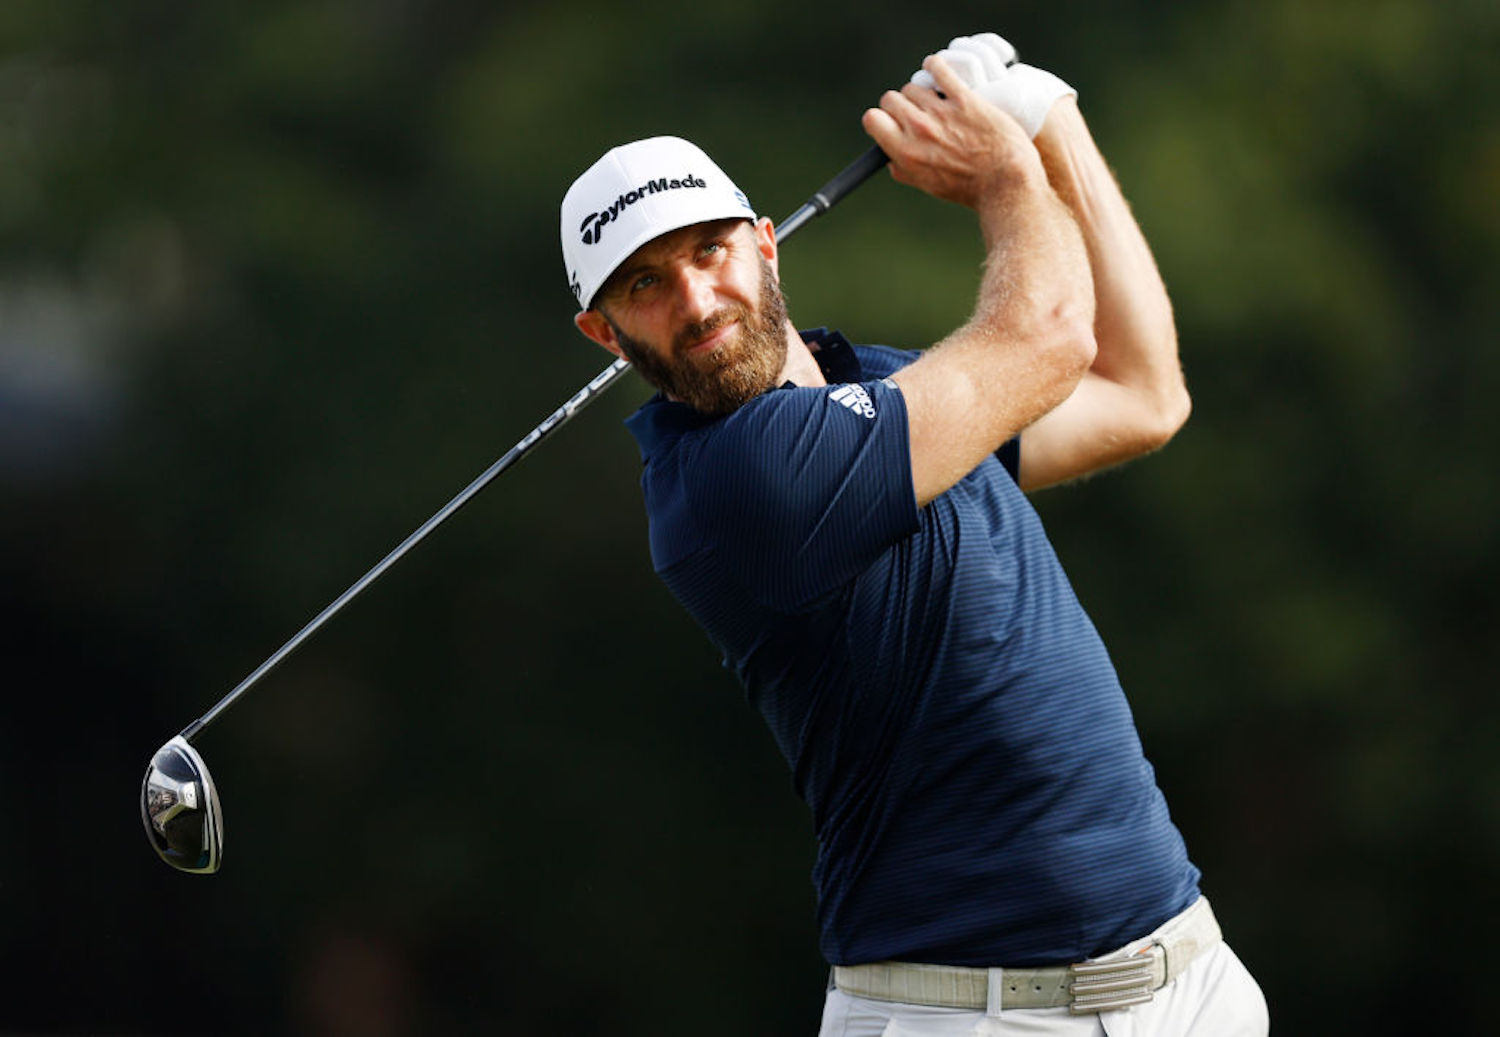 Dustin Johnson missed two weeks recovering from COVID-19, but he just proved he's still the best player on the PGA Tour.